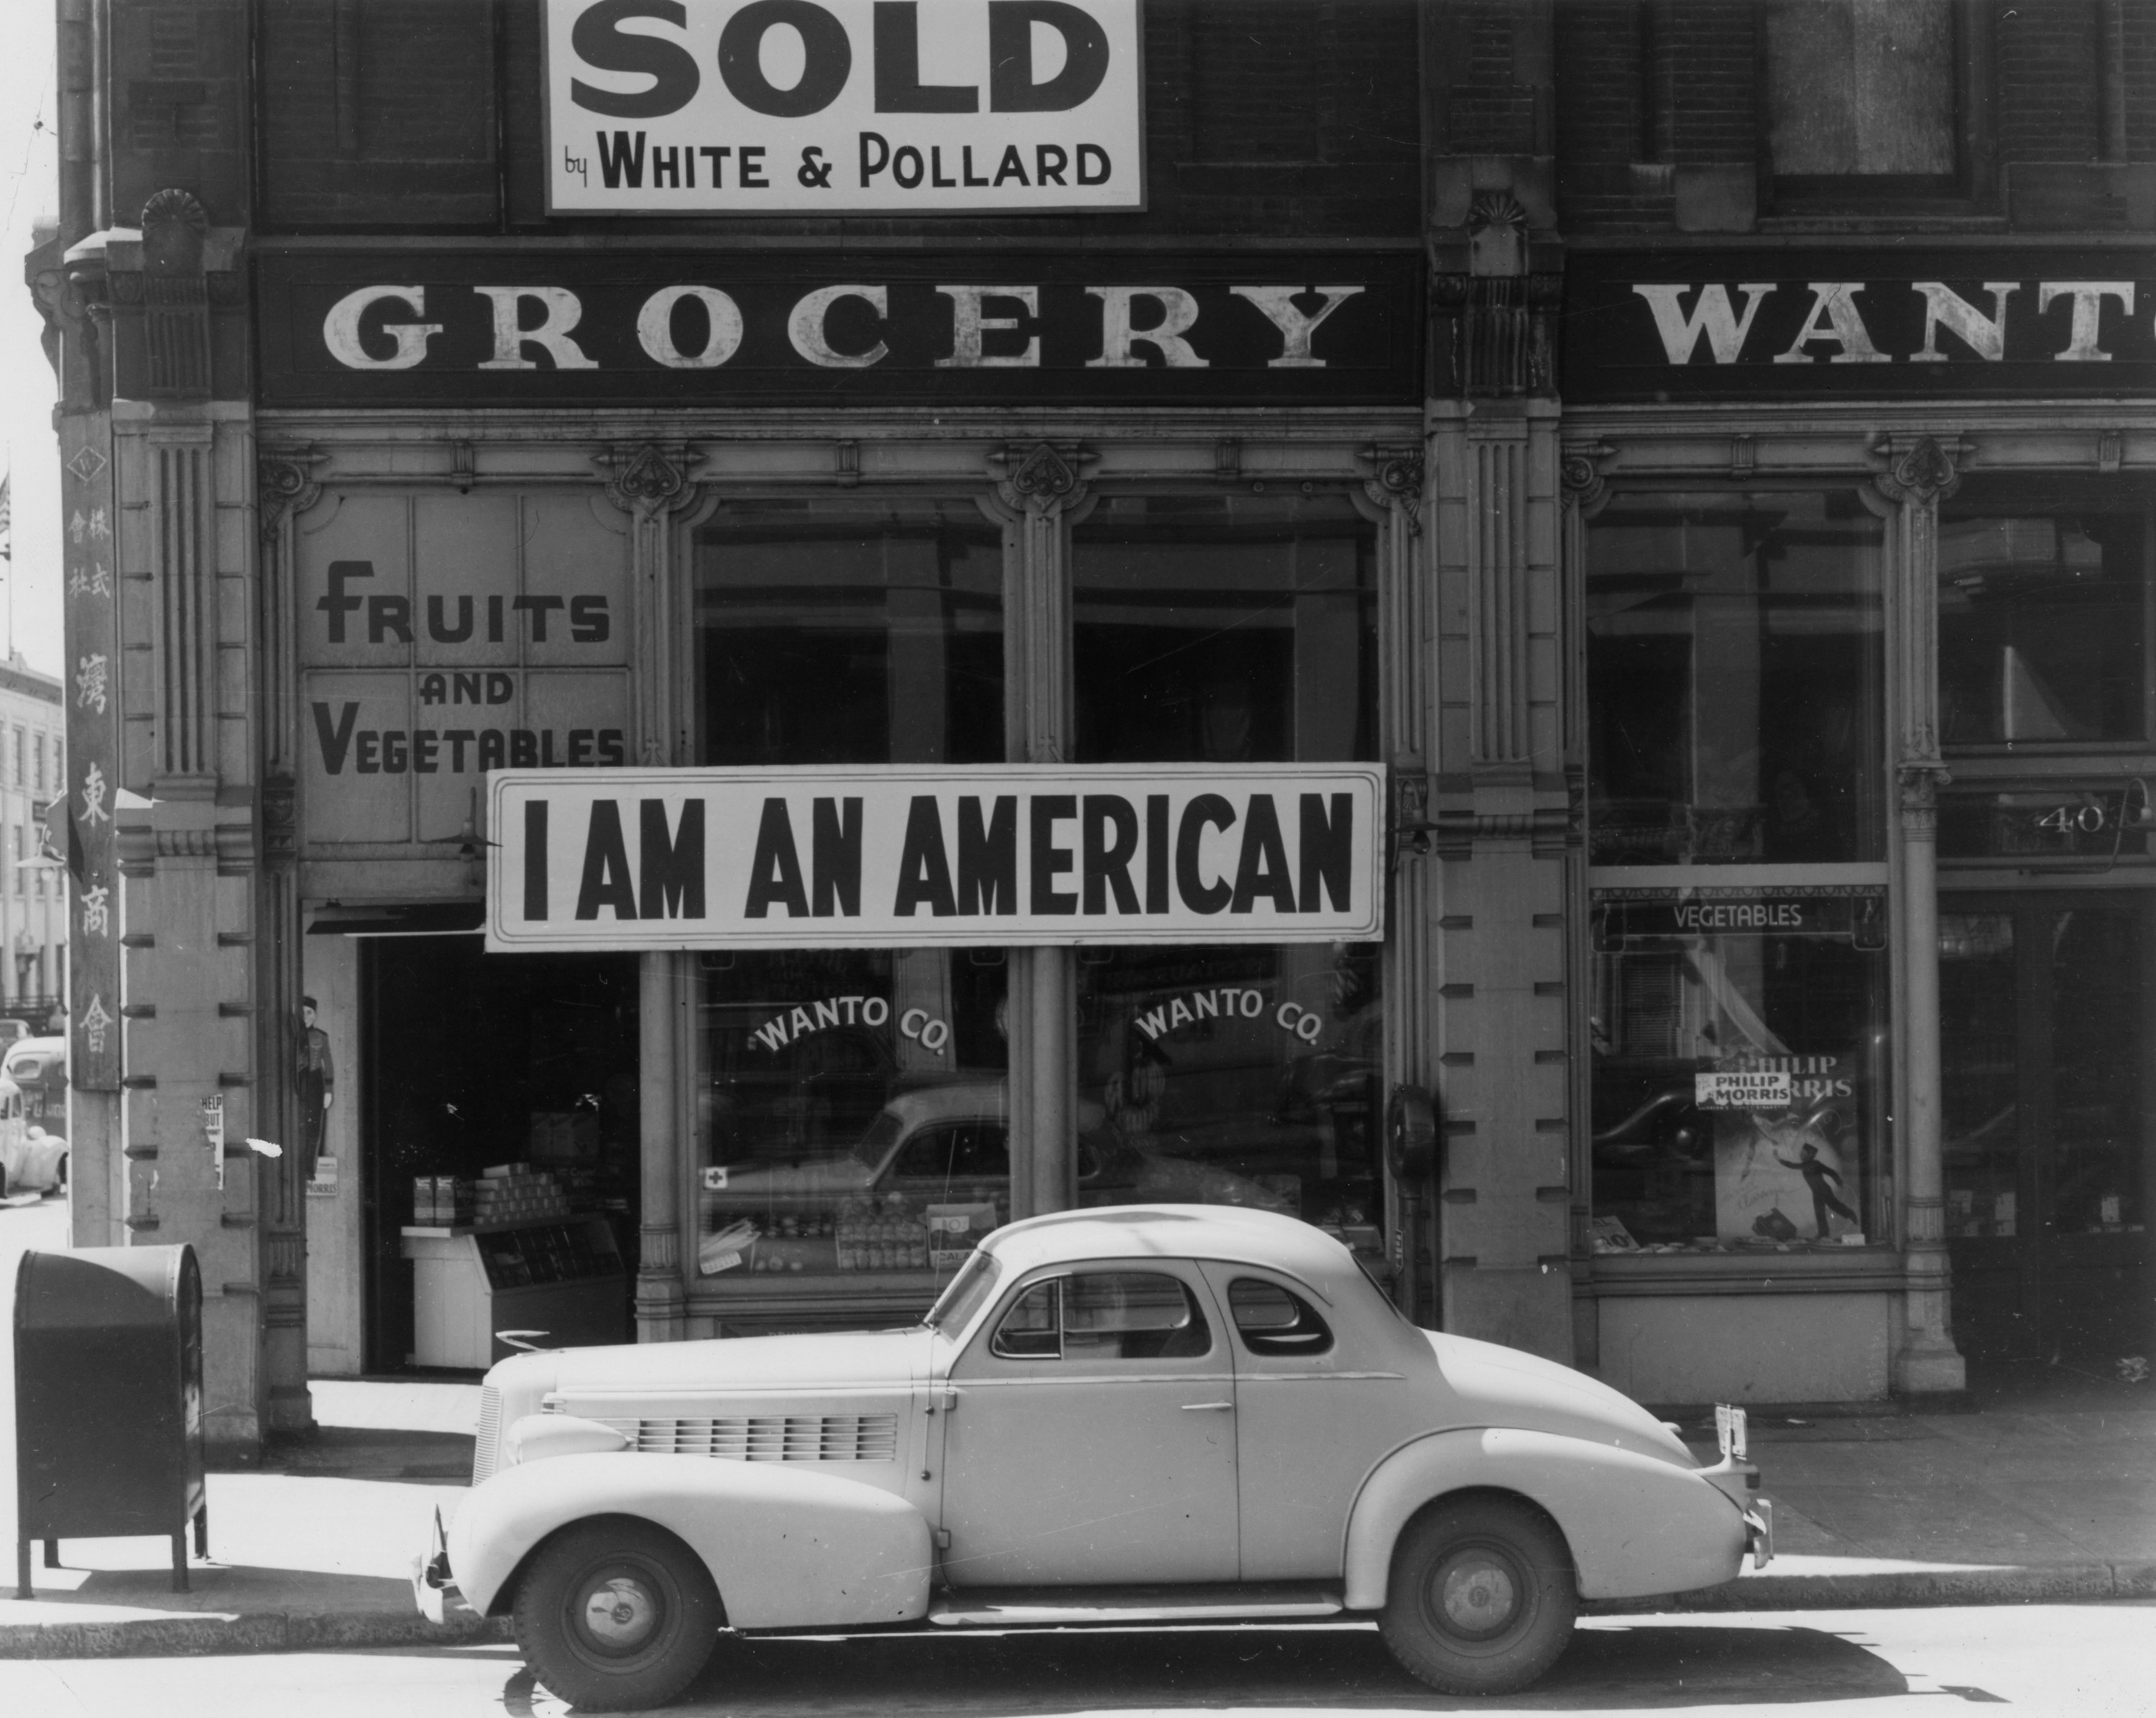 A sign reading: 'I AM AN AMERICAN', on the Wanto Co grocery store in Oakland, California